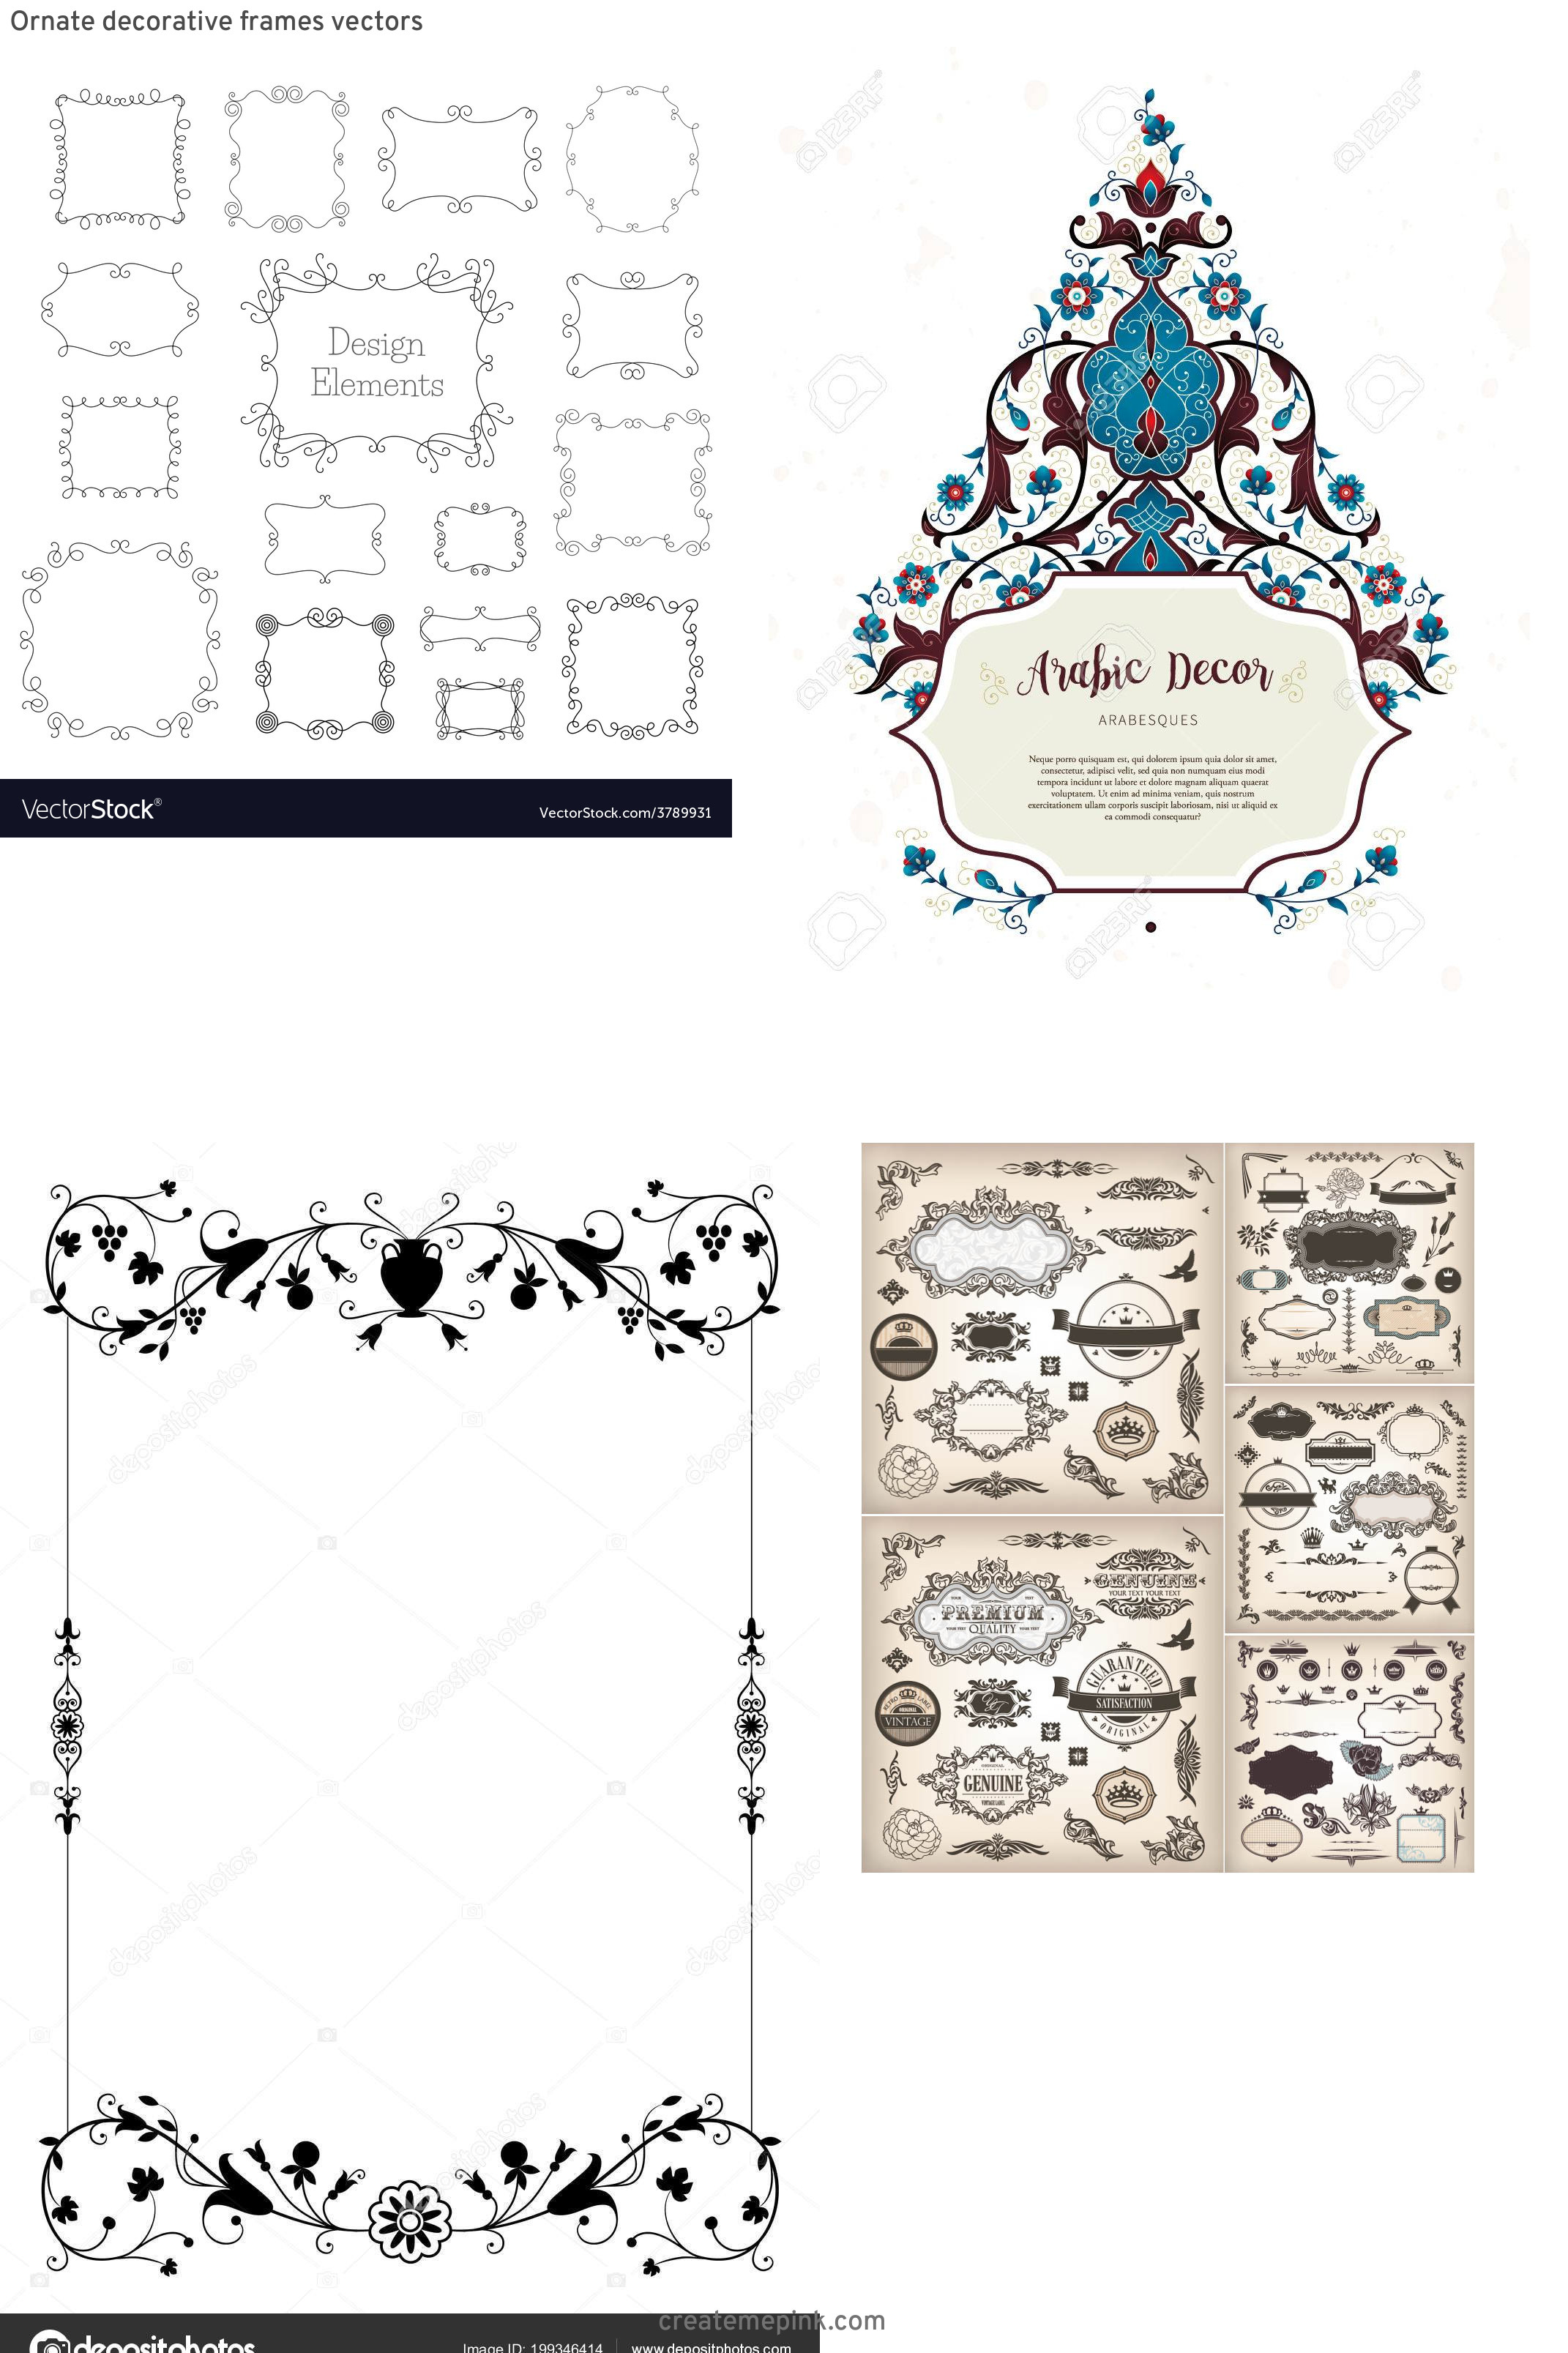 Elements Of Vector Vintage Decorative Frame: Ornate Decorative Frames Vectors